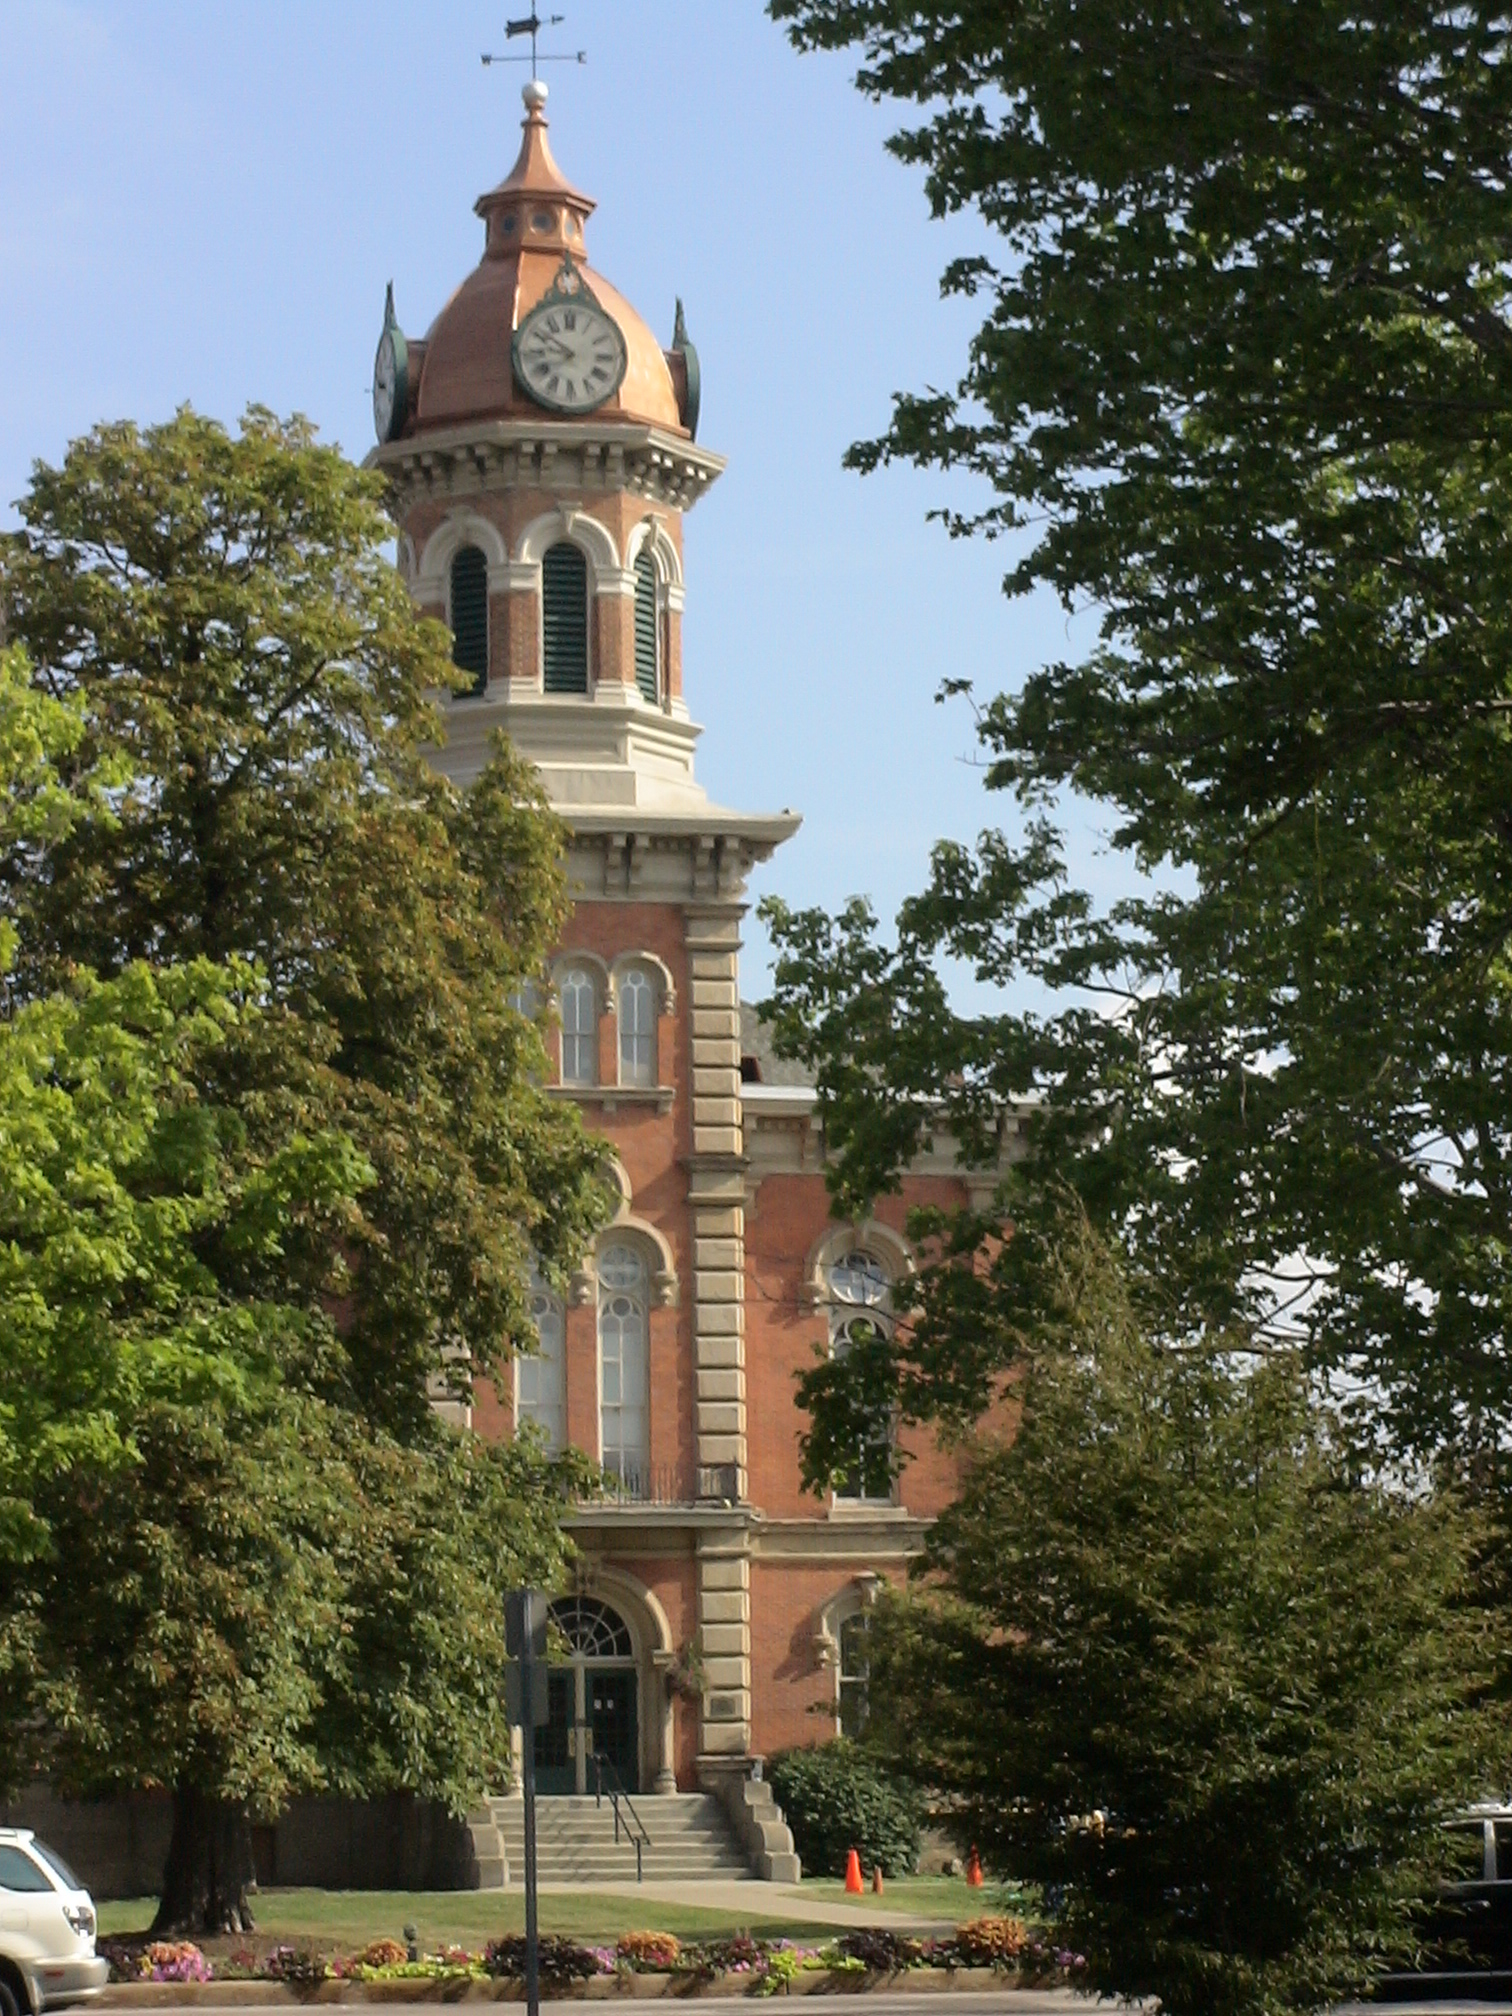 Historic Geauga County Courthouse